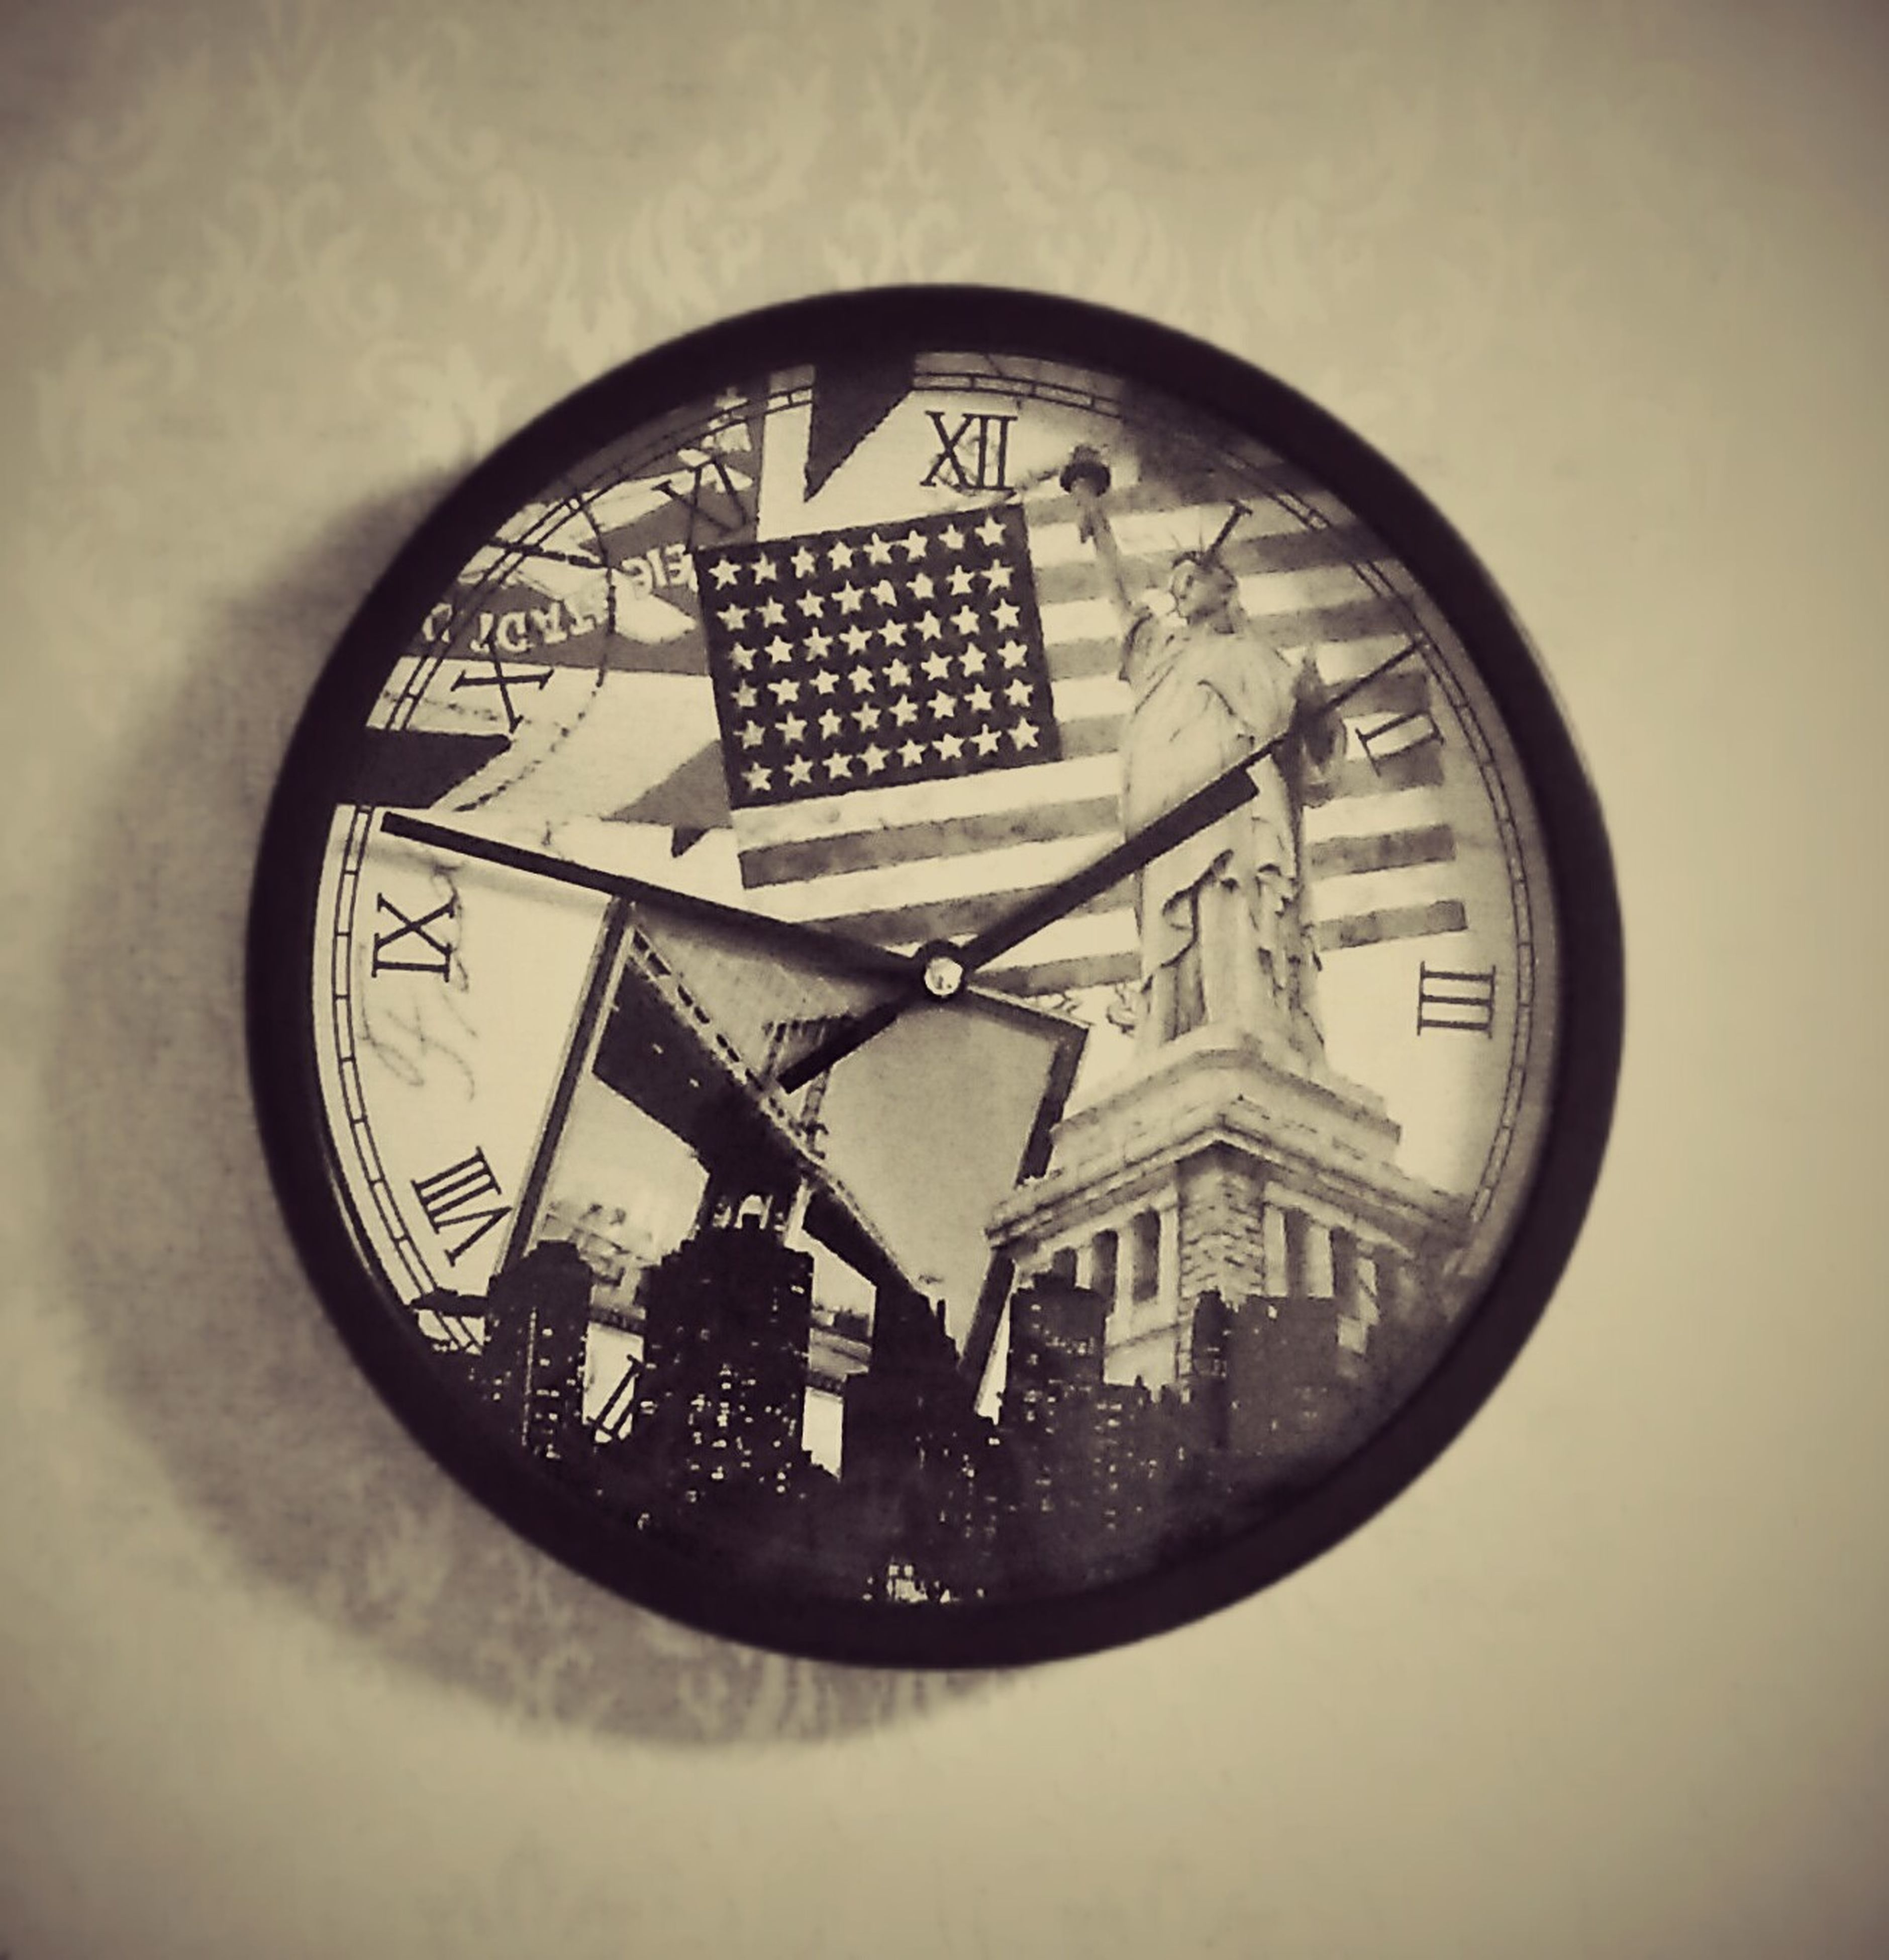 indoors, clock, time, circle, geometric shape, built structure, architecture, low angle view, clock face, number, old-fashioned, no people, window, roman numeral, wall - building feature, close-up, glass - material, minute hand, day, reflection